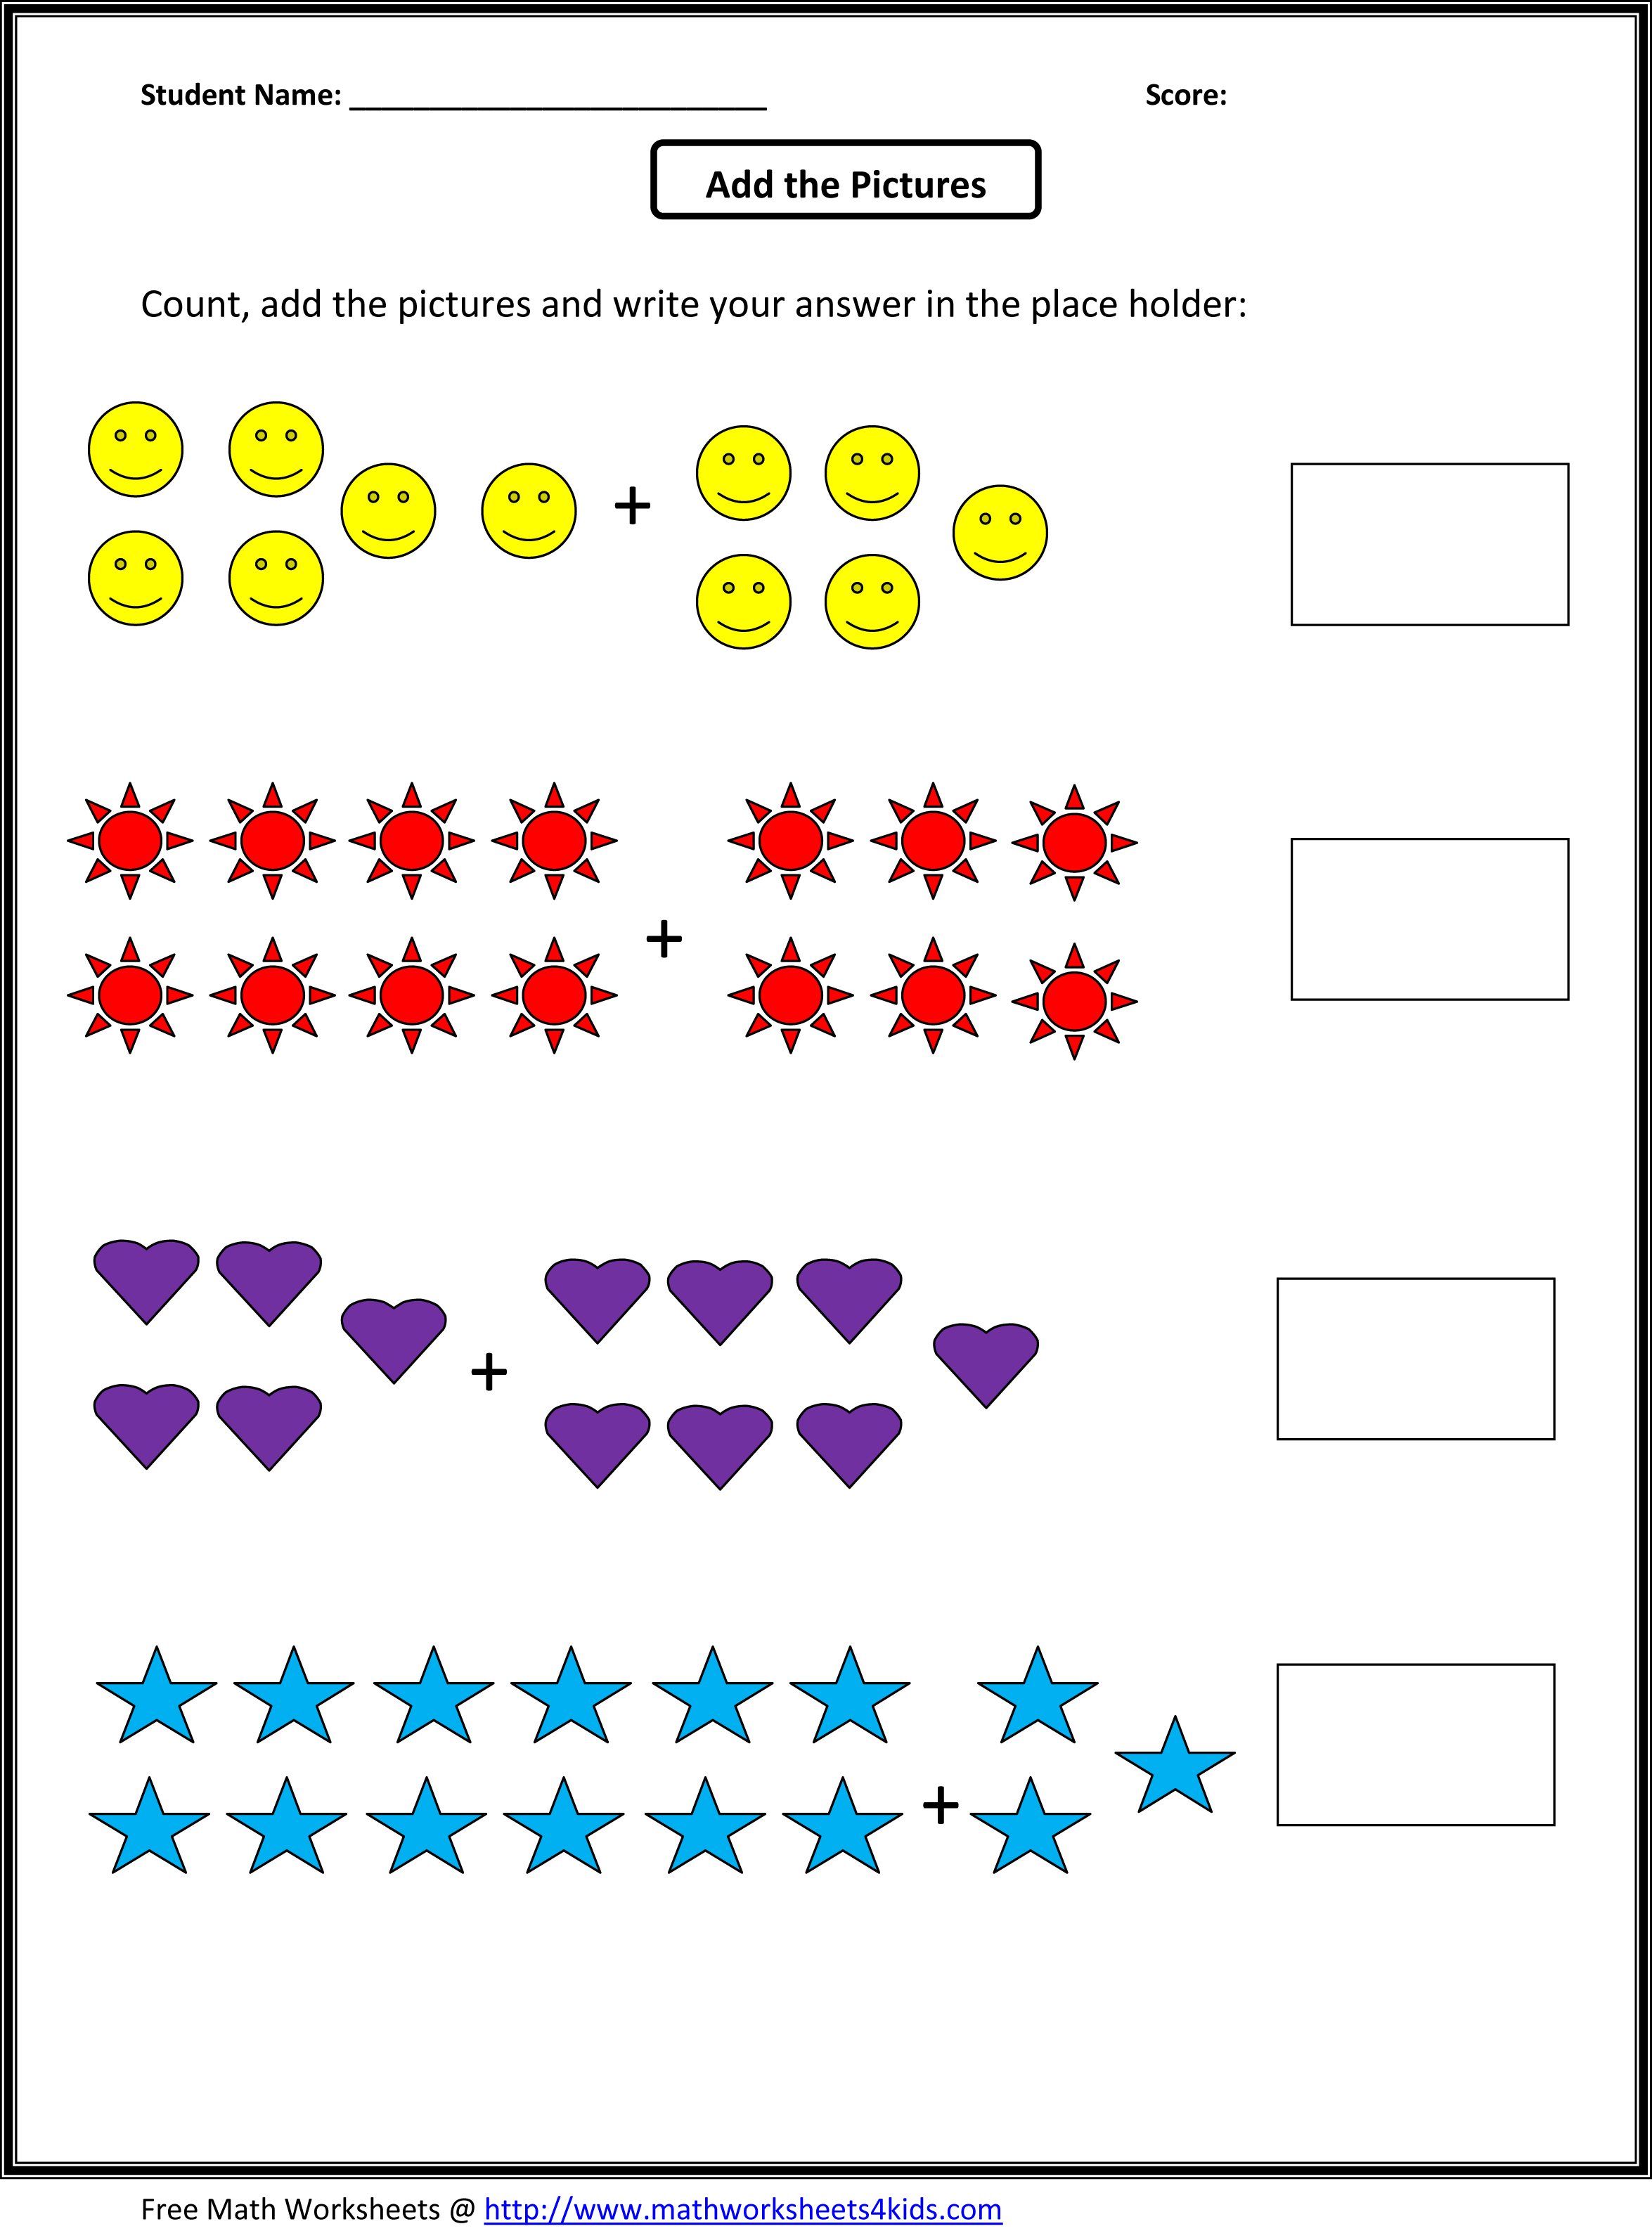 Proatmealus  Unusual Grade  Maths Worksheet  Reocurent With Engaging Math Worksheets For St Grade Free  Reocurent With Easy On The Eye  Earned Income Credit Worksheet Also Get To Know You Worksheet High School In Addition Practice Writing Letters Printable Worksheets And Spanish One Worksheets As Well As Reading Comprehension Worksheets Grade  Additionally Hot Air Balloon Worksheet From Reocurentcom With Proatmealus  Engaging Grade  Maths Worksheet  Reocurent With Easy On The Eye Math Worksheets For St Grade Free  Reocurent And Unusual  Earned Income Credit Worksheet Also Get To Know You Worksheet High School In Addition Practice Writing Letters Printable Worksheets From Reocurentcom